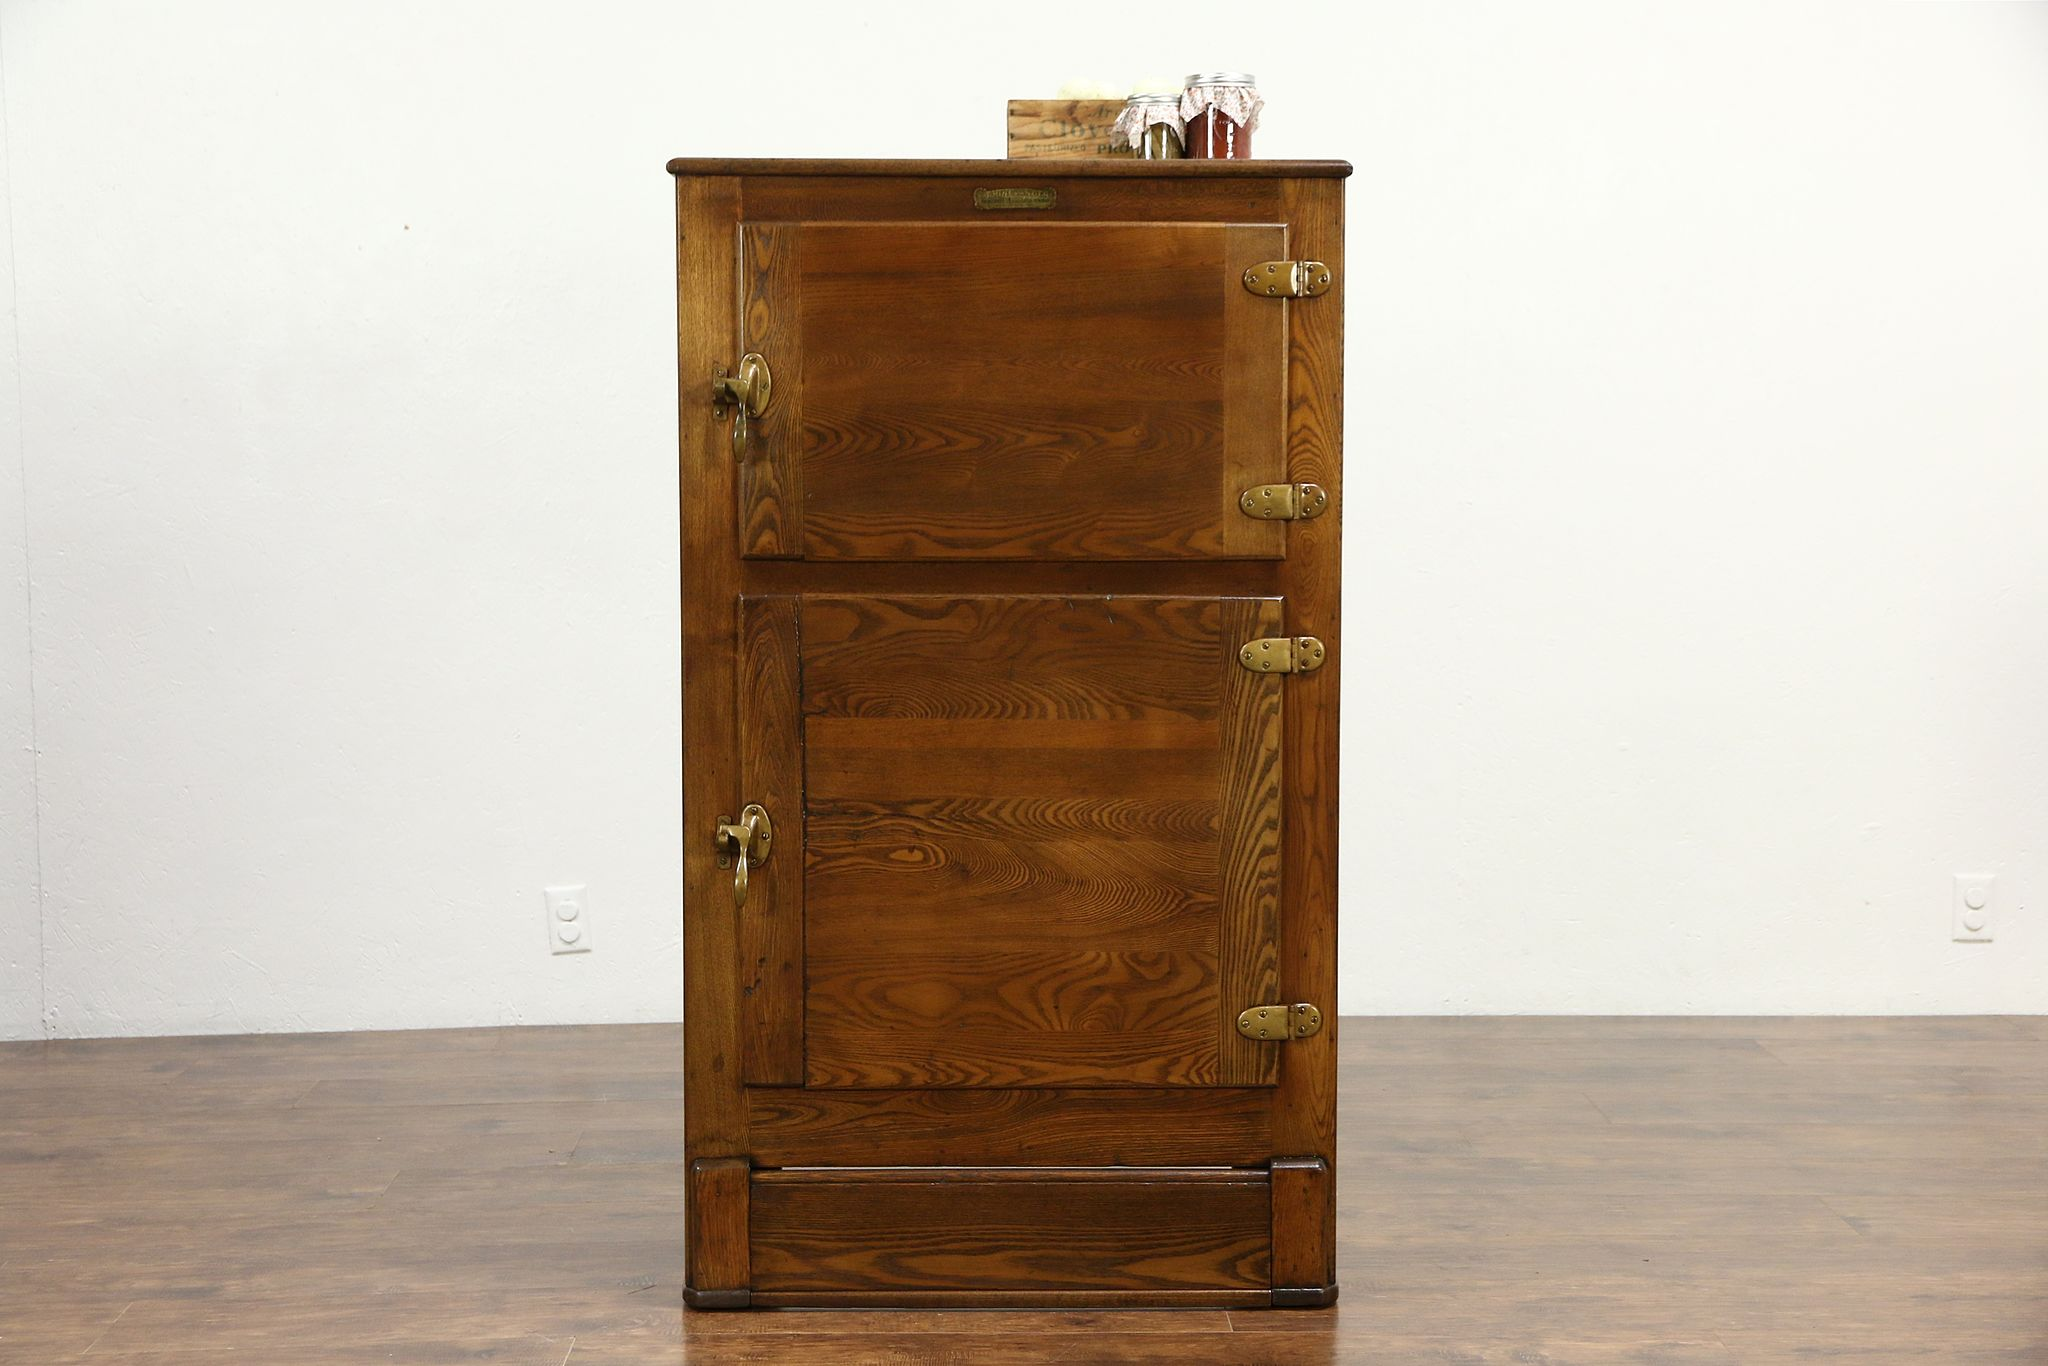 Oak 1910 Antique Kitchen Pantry Ice Box, Signed Rhinelander Refrigerator, WI